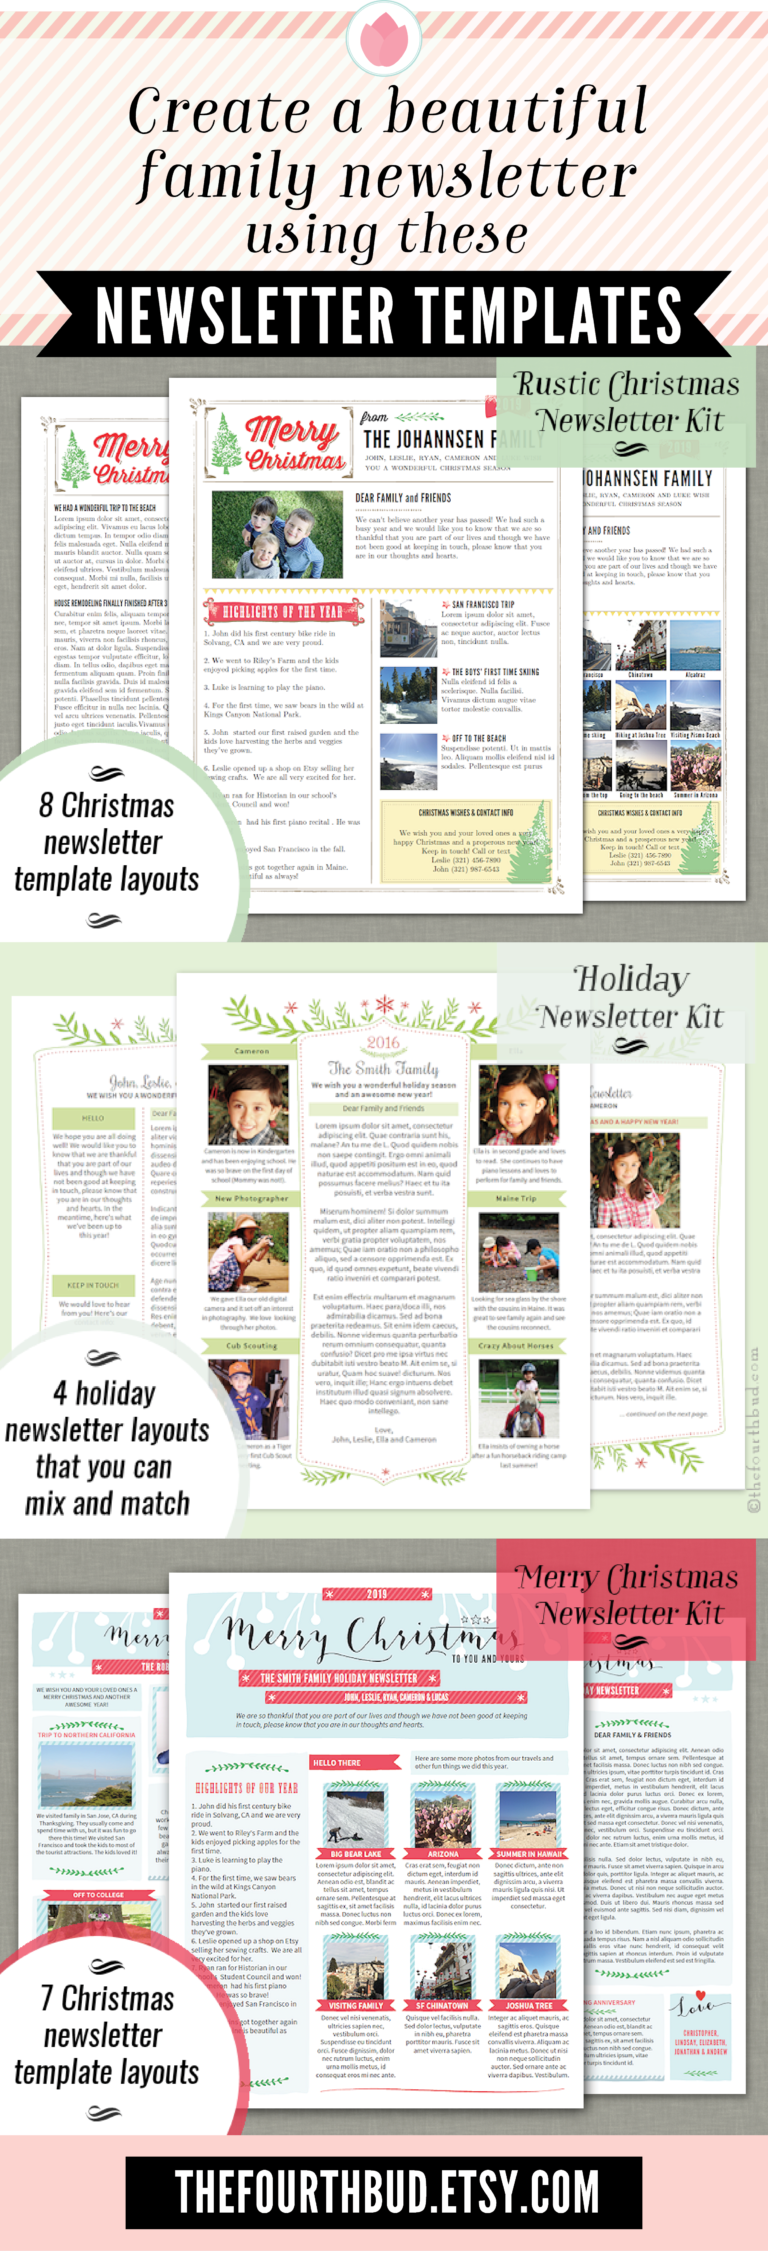 Pin By The Fourth Bud On Christmas Newsletter Templates Year In